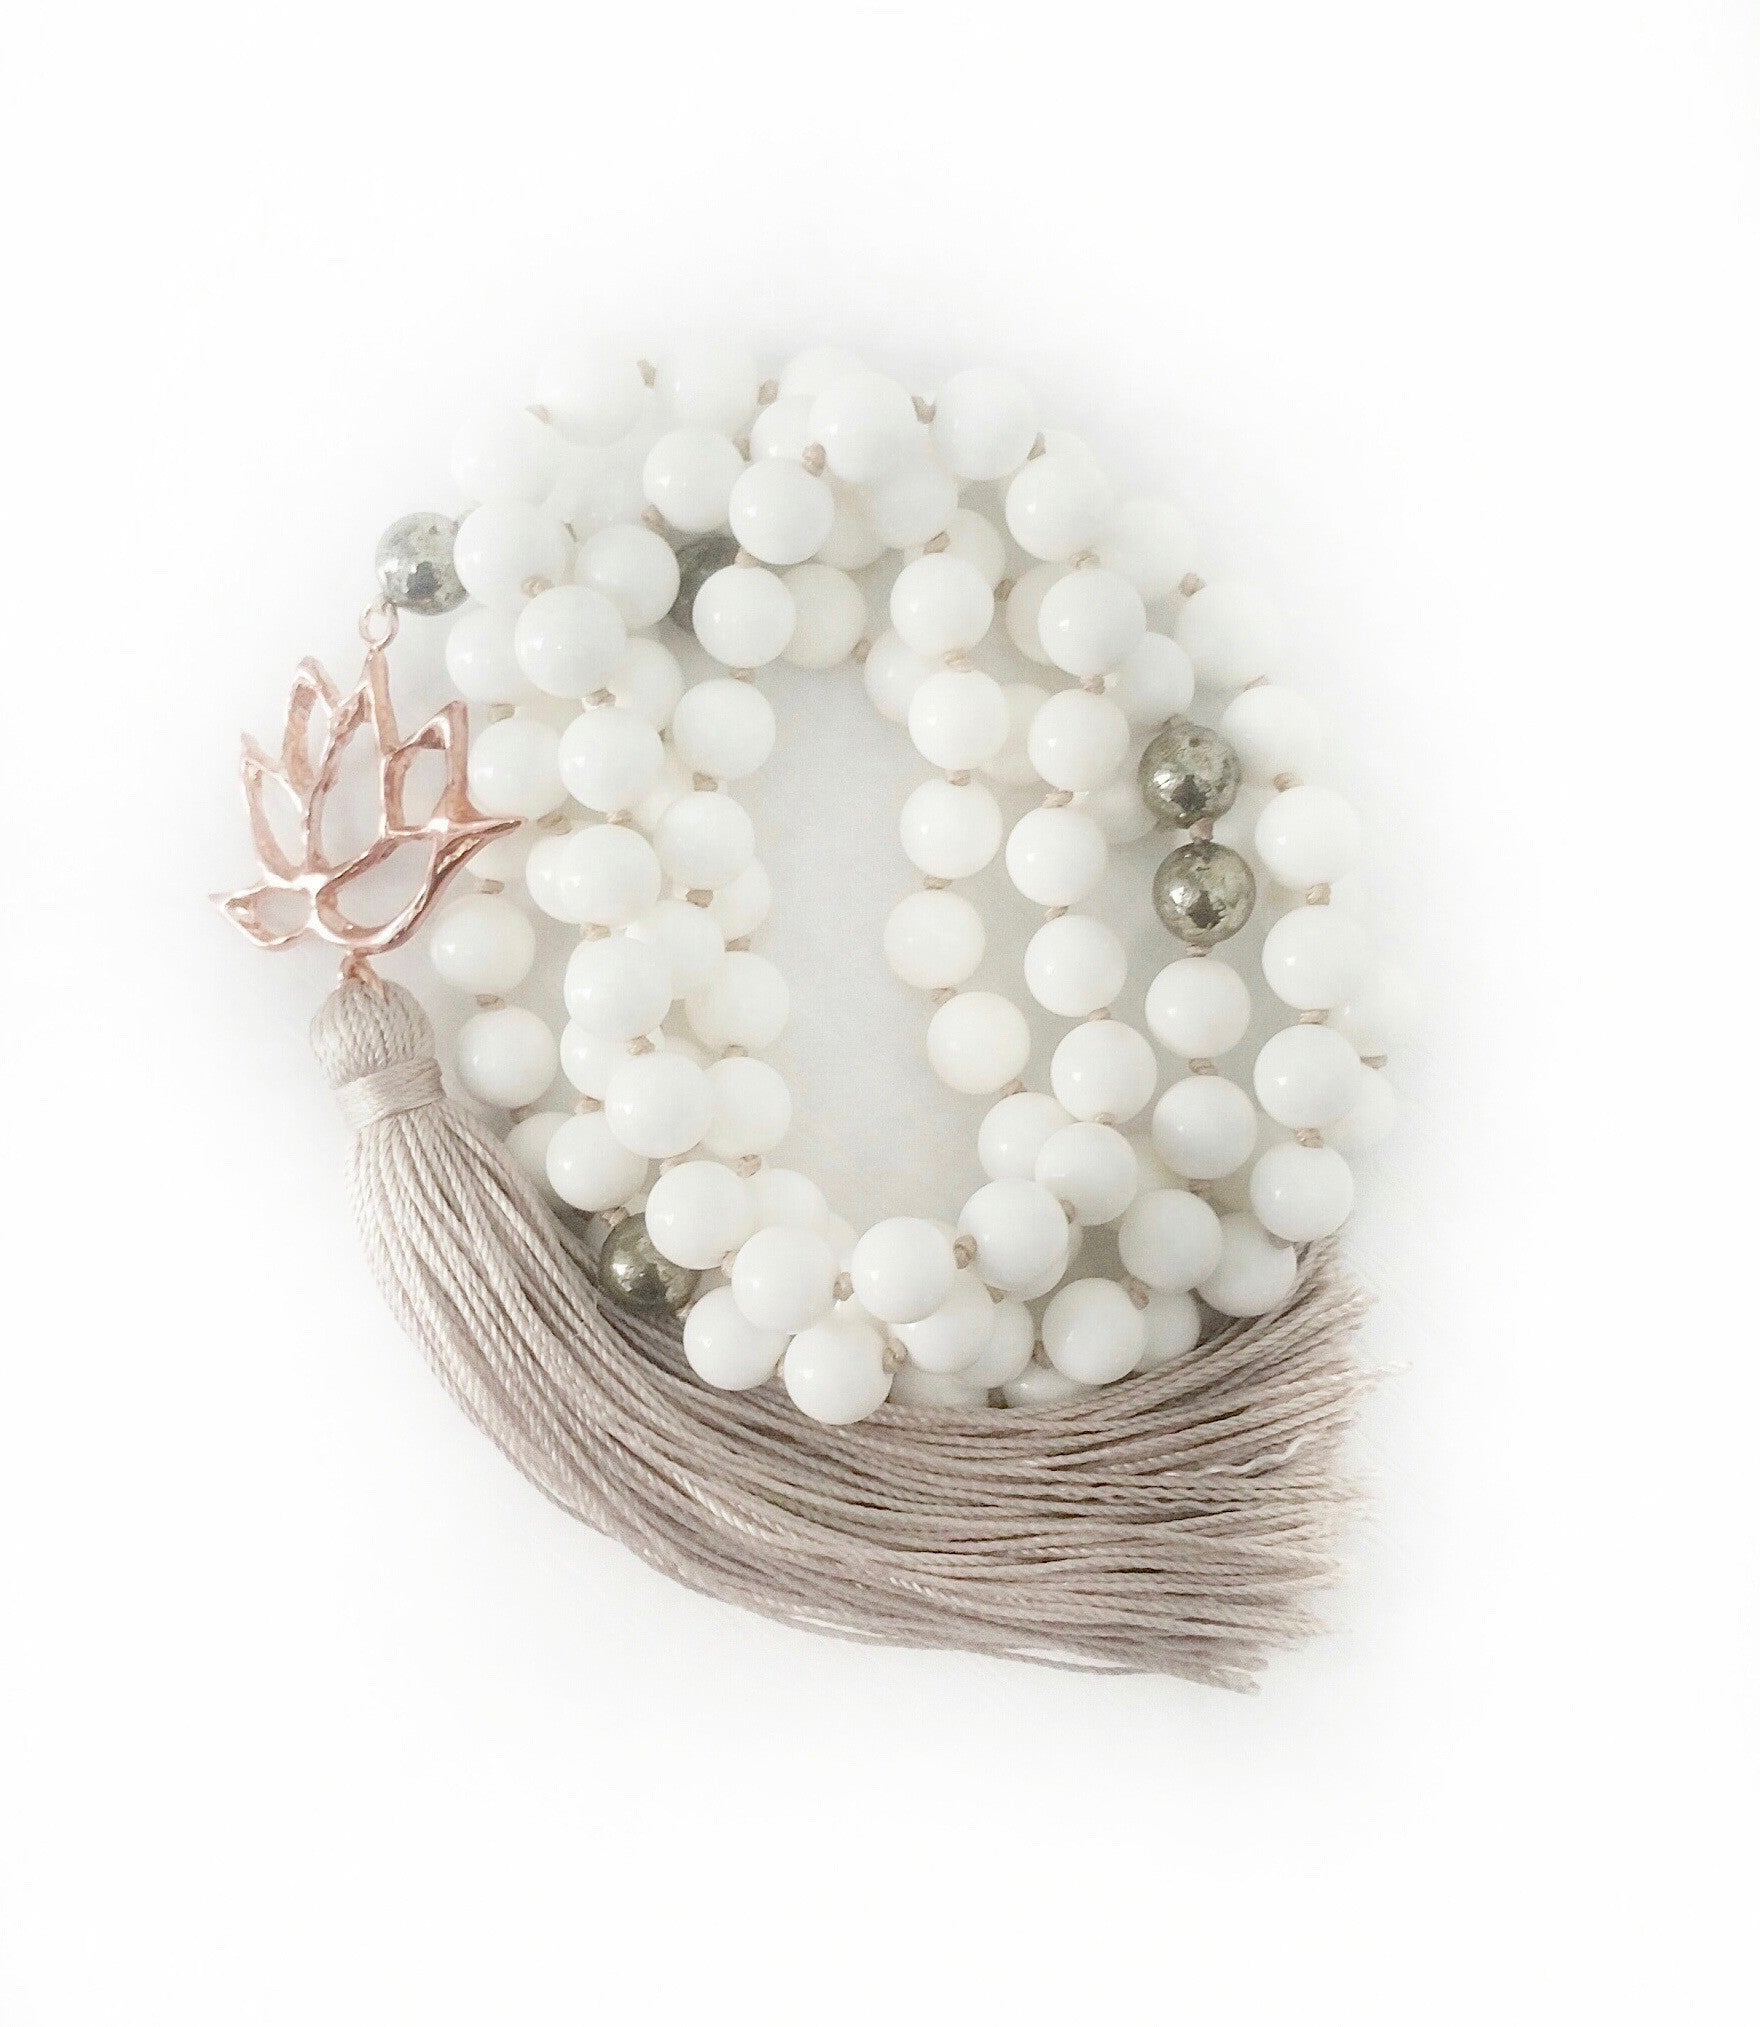 White Shell & Pyrite True Self Lotus Goddess Mala a KinoYoga Capsule for Open Heart Warrior